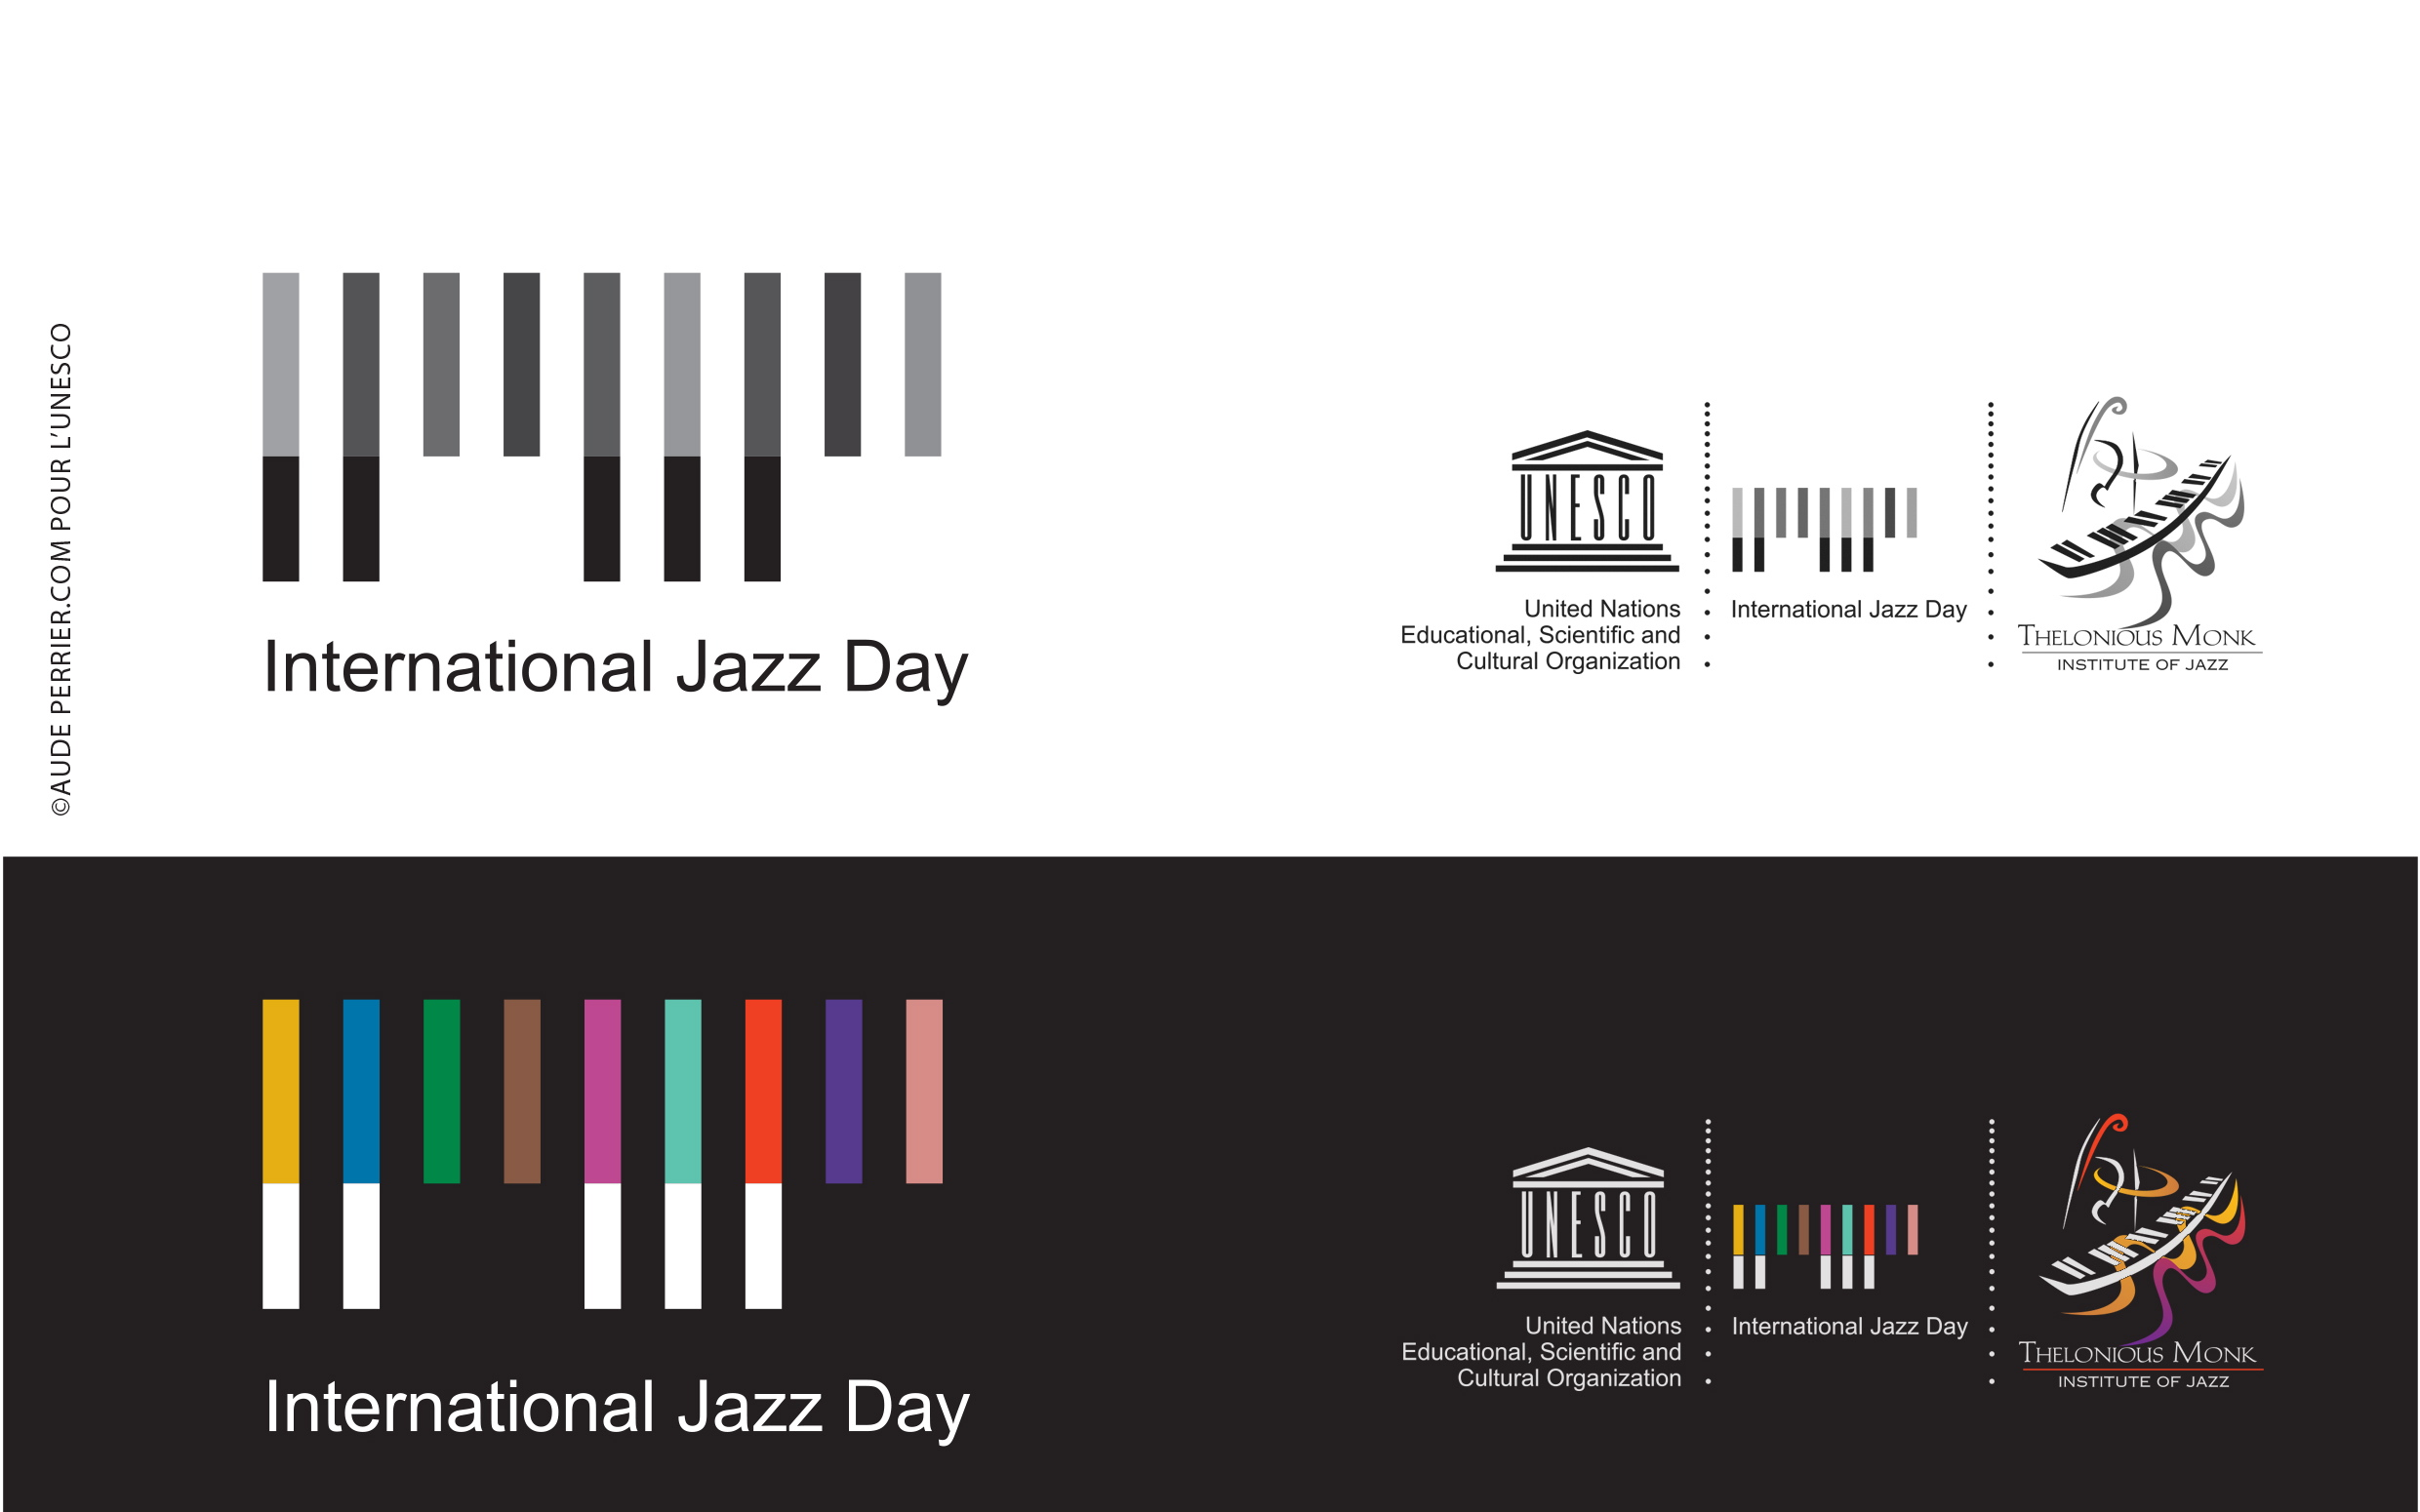 HBG's nod to International Jazz Day